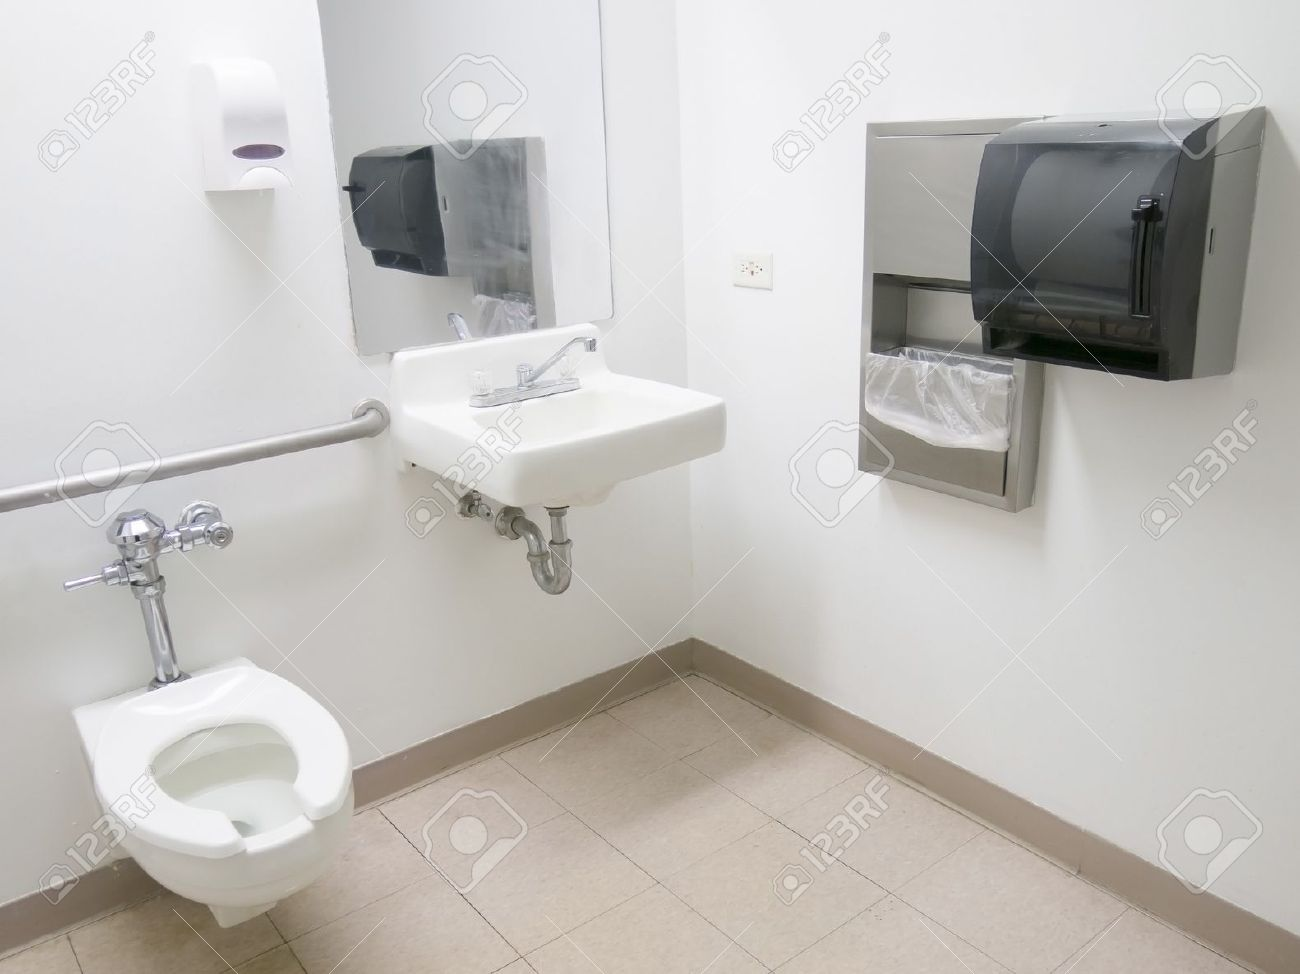 Disabled Toilet Clean Public Hospital Bathroom With Handrail Soap And Paper Towel Dispenser